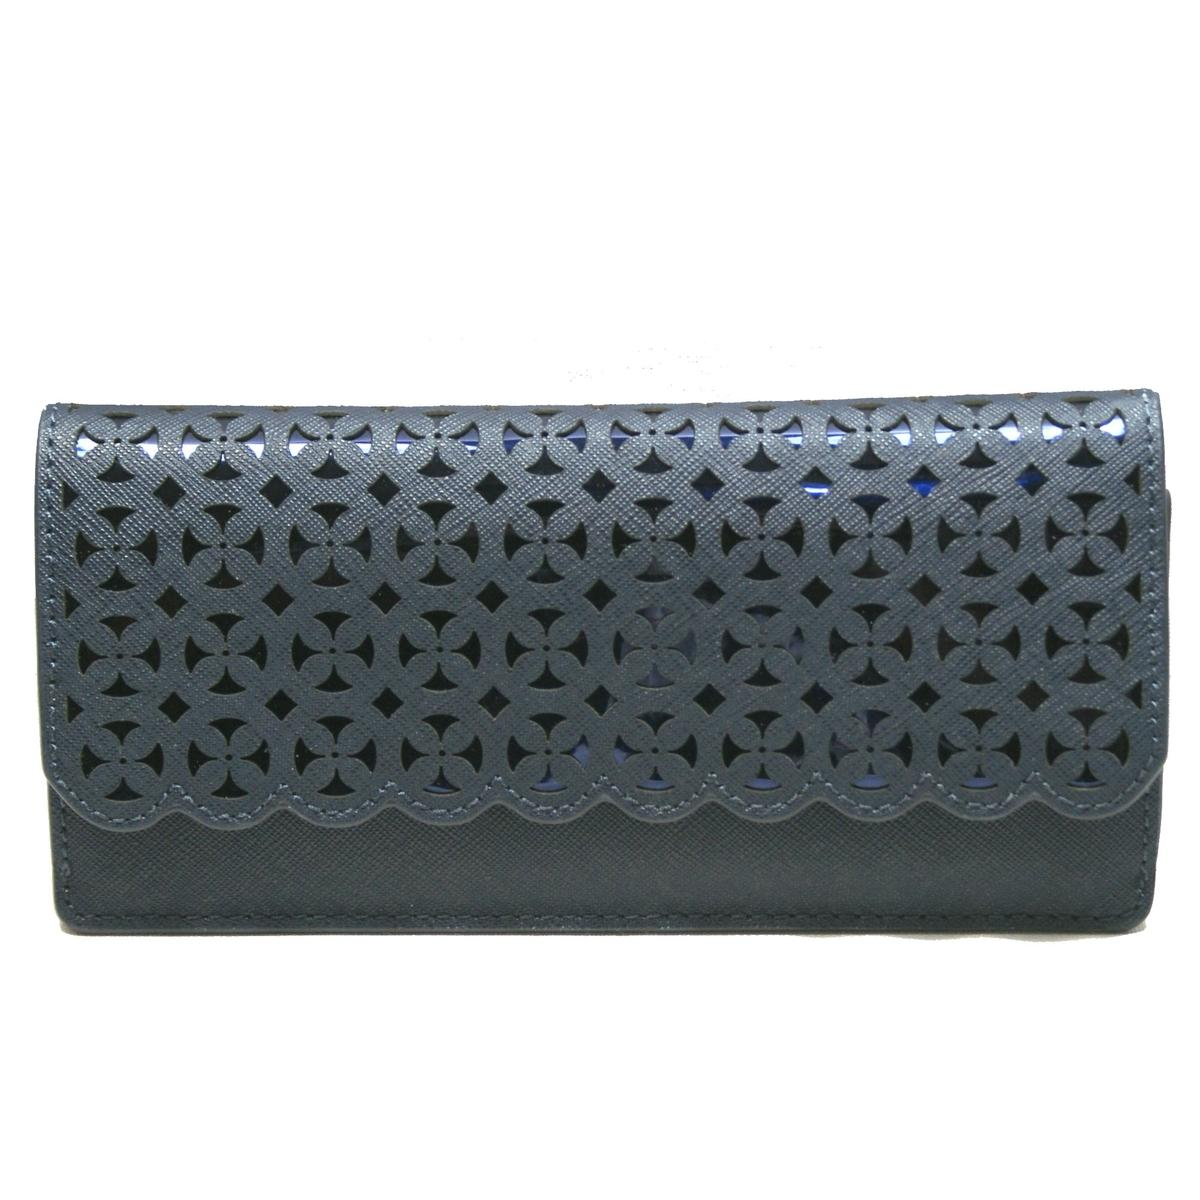 99ed473dd0a1 Home · Michael Kors · Desi Flat Leather Flap Wallet/ Clutch Admiral. CLICK  THUMBNAIL TO ZOOM. Found In: Handbags